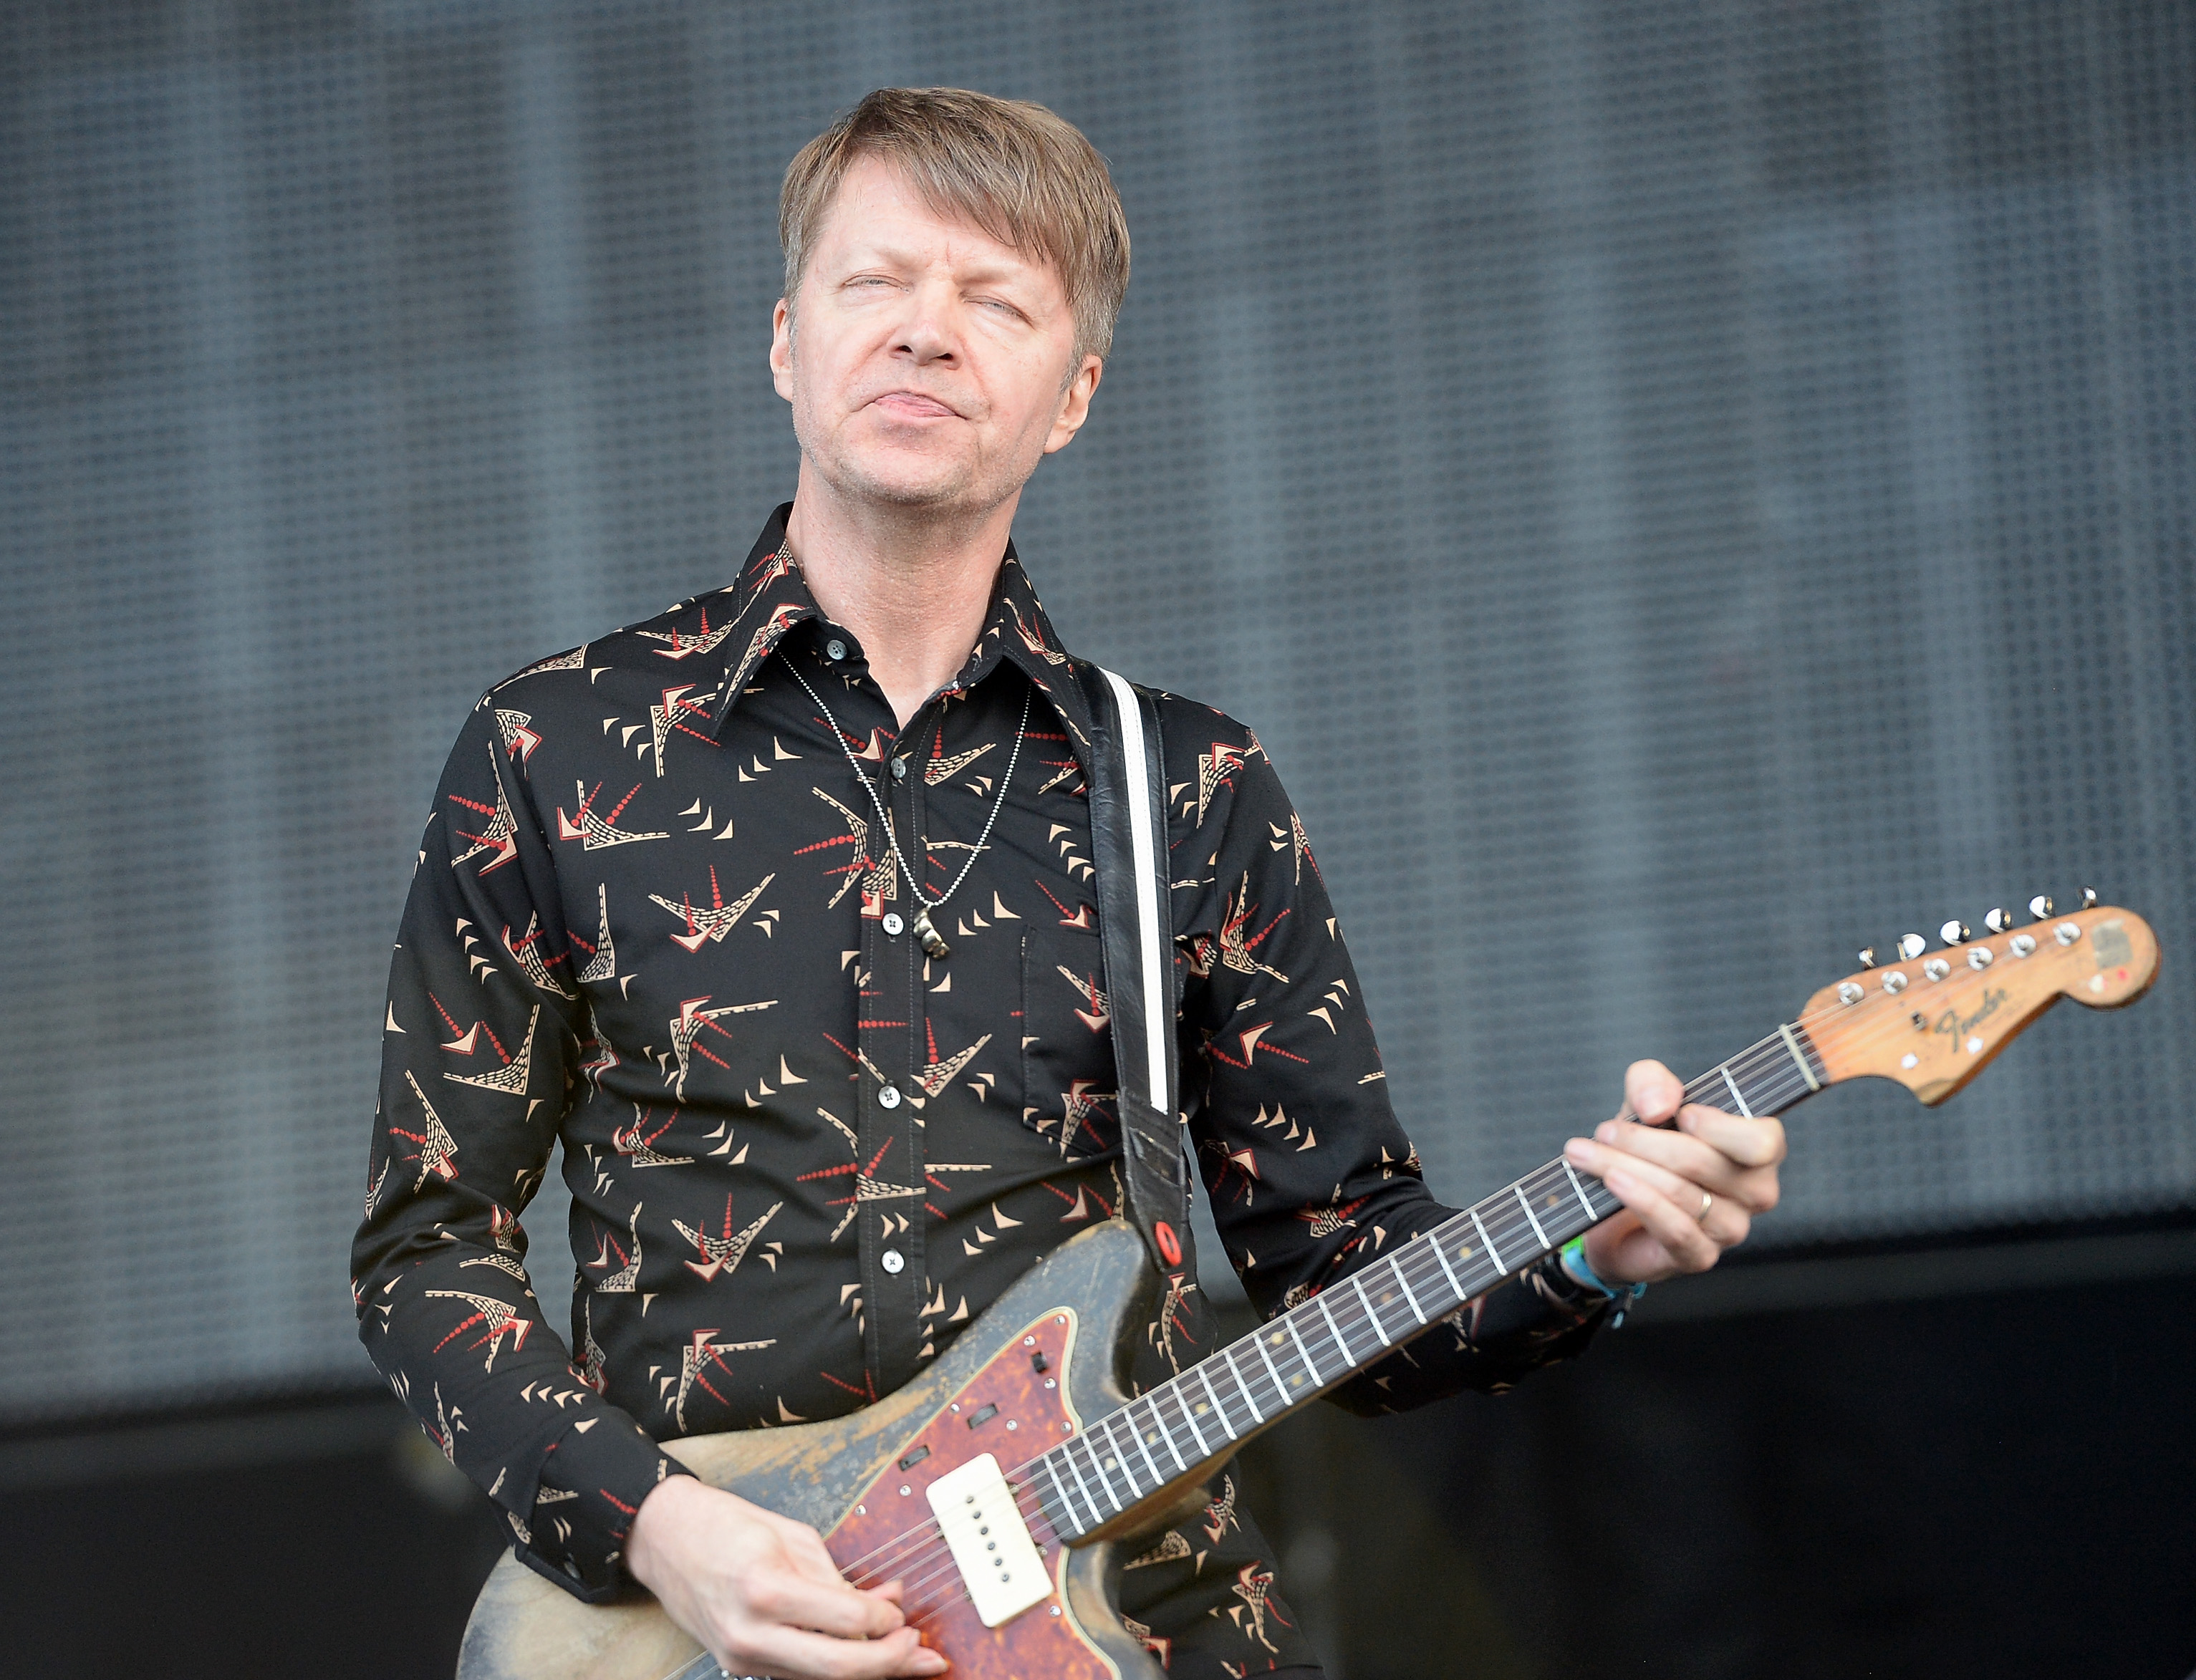 MANCHESTER, TN - JUNE 14:  Nels Cline of Wilco performs onstage at What Stage during day 2 of the 2013 Bonnaroo Music & A